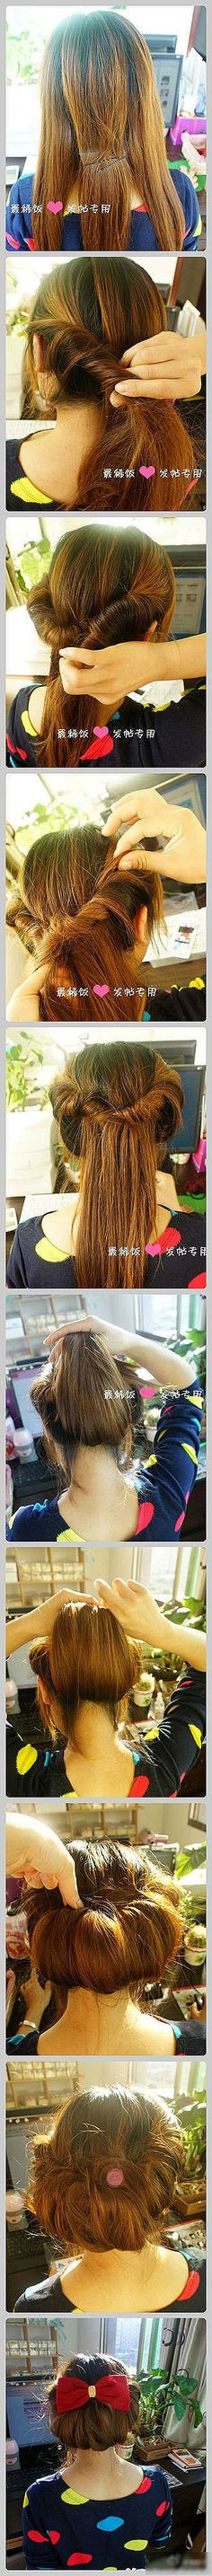 cute updo howto - Hairstyles and Beauty Tips Cute Updo, Great Hair, Awesome Hair, About Hair, Hair Today, Hair Dos, Gorgeous Hair, Pretty Hairstyles, Hair Hacks